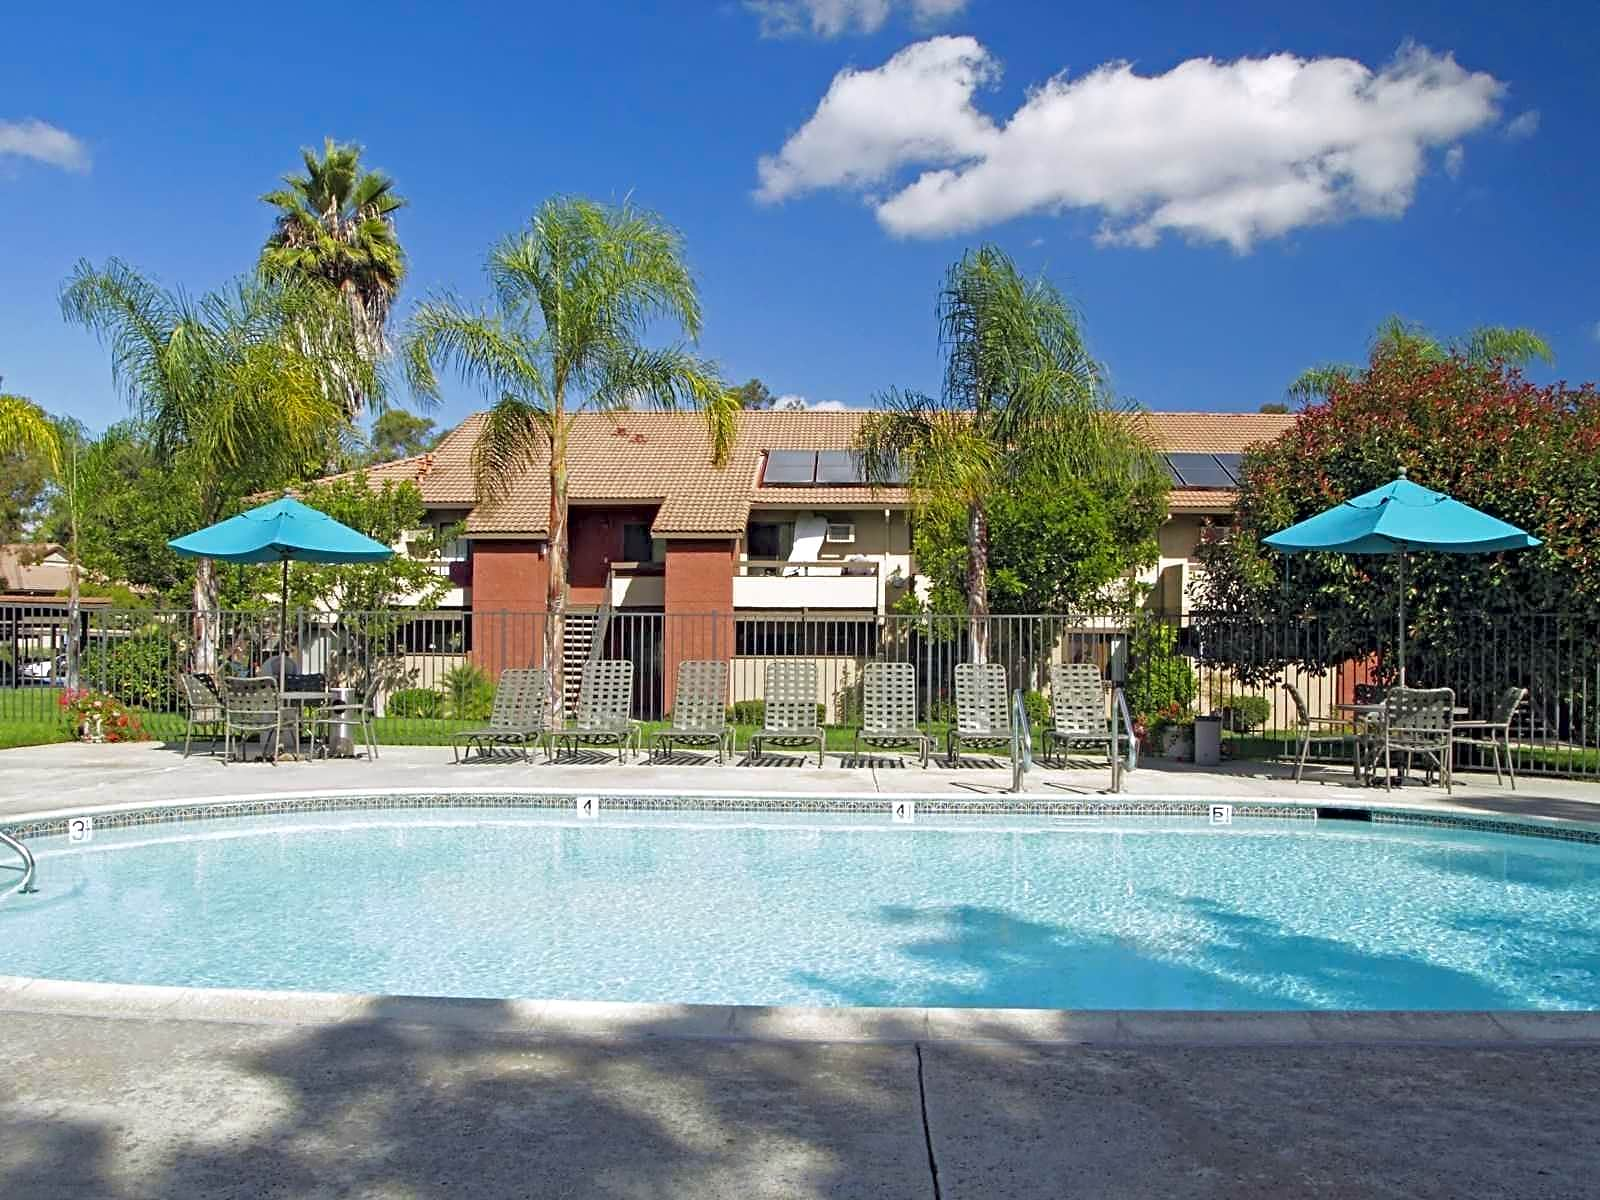 Apartments Near Cal State San Marcos Shadowridge Village for Cal State San Marcos Students in San Marcos, CA